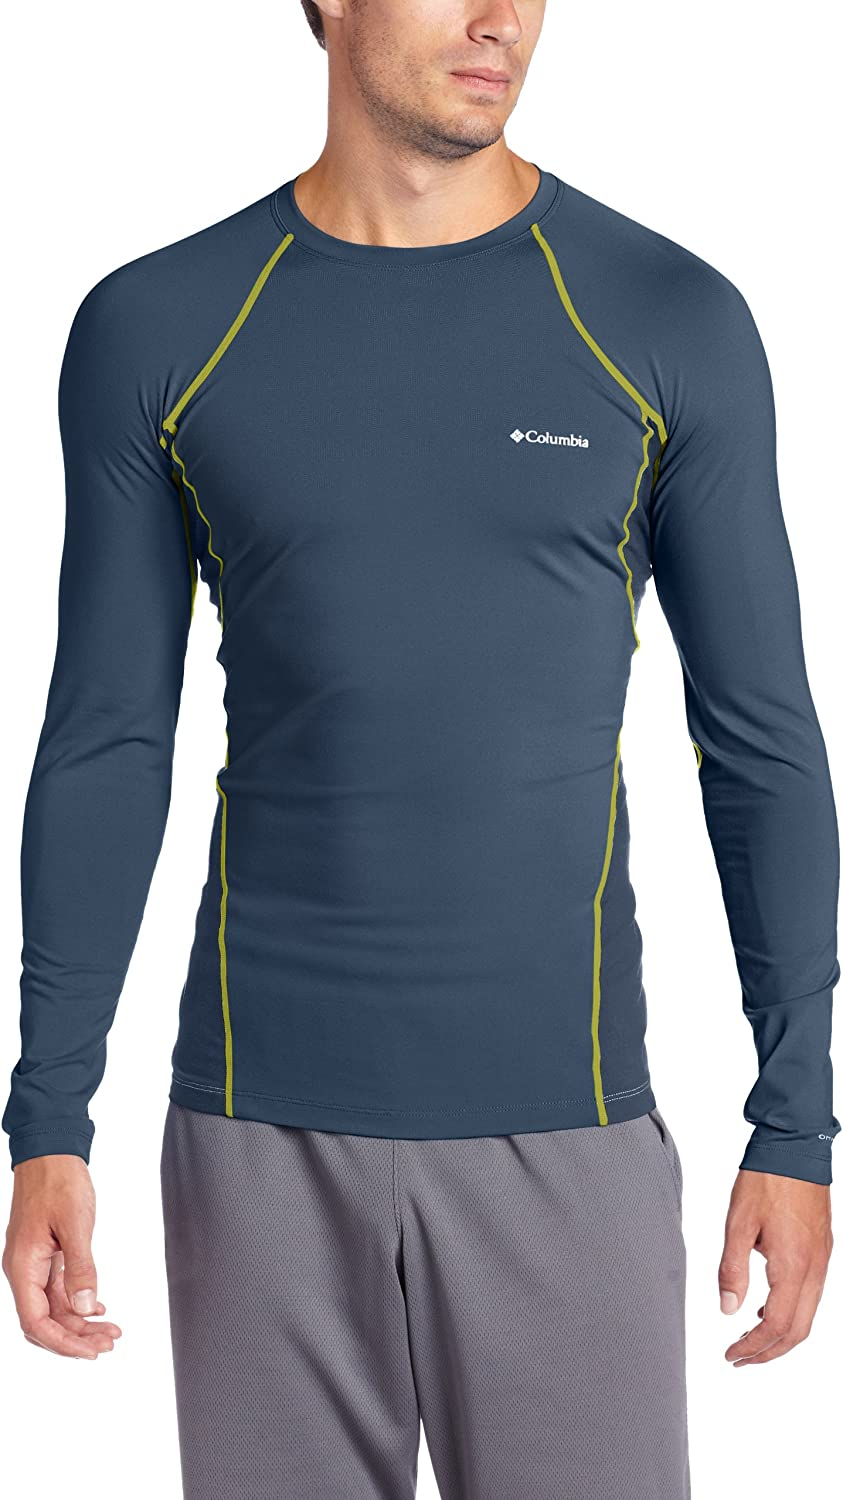 Columbia Men's Baselayer Midweight Long Mystery Lar Top Sleeve Opening large release sale overseas